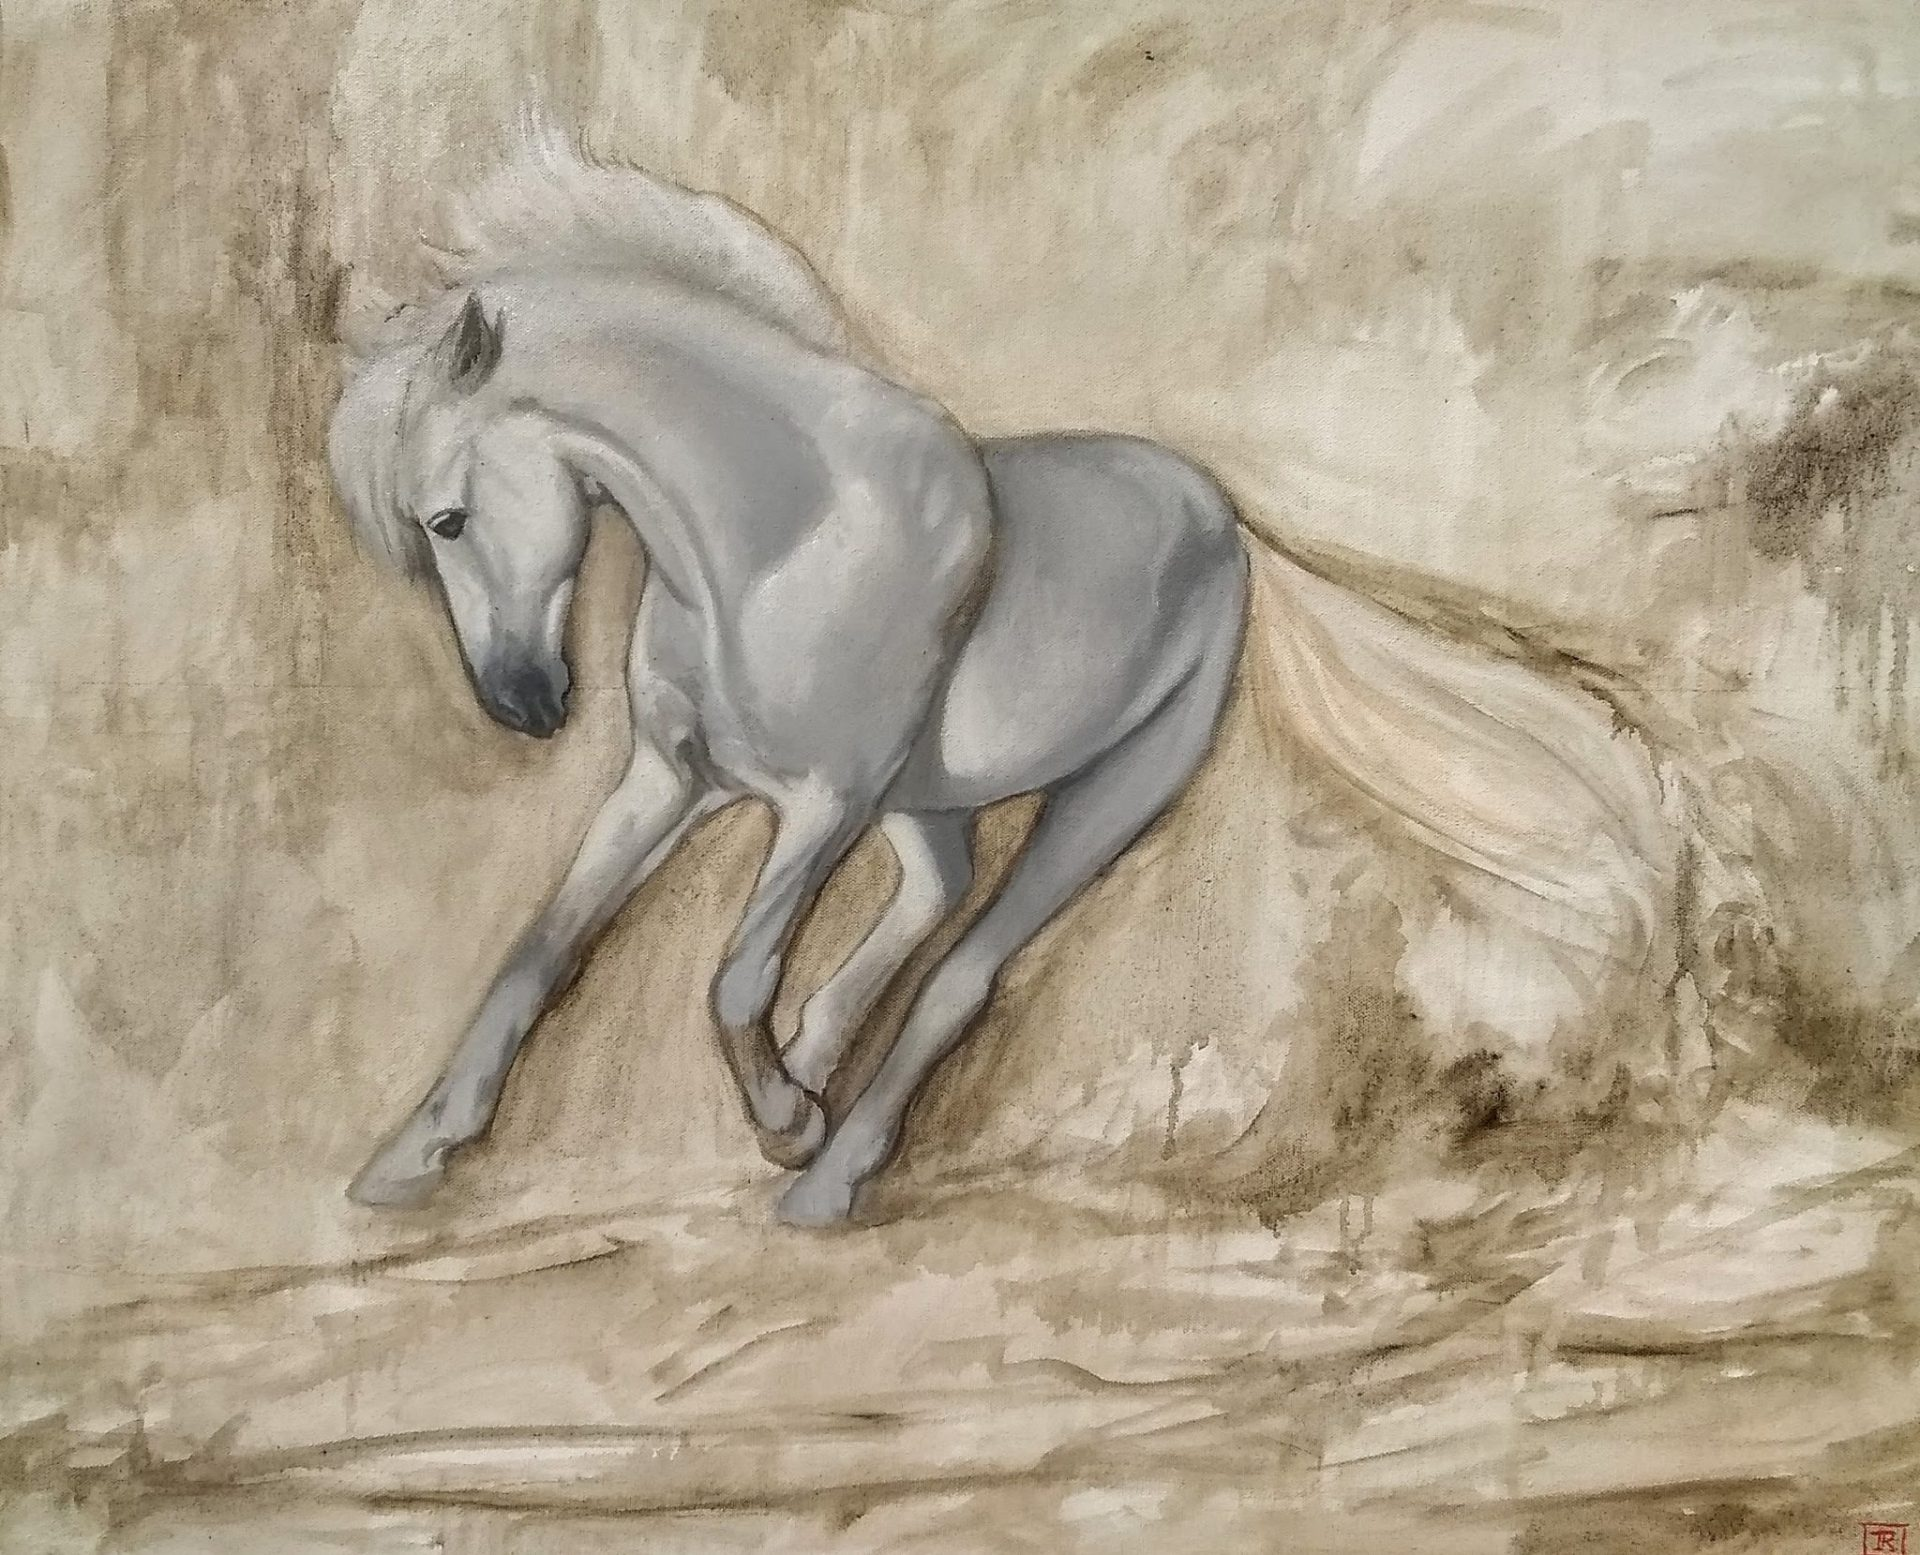 Oil painting by Rebecca King Hawkinson of Horse entiltled